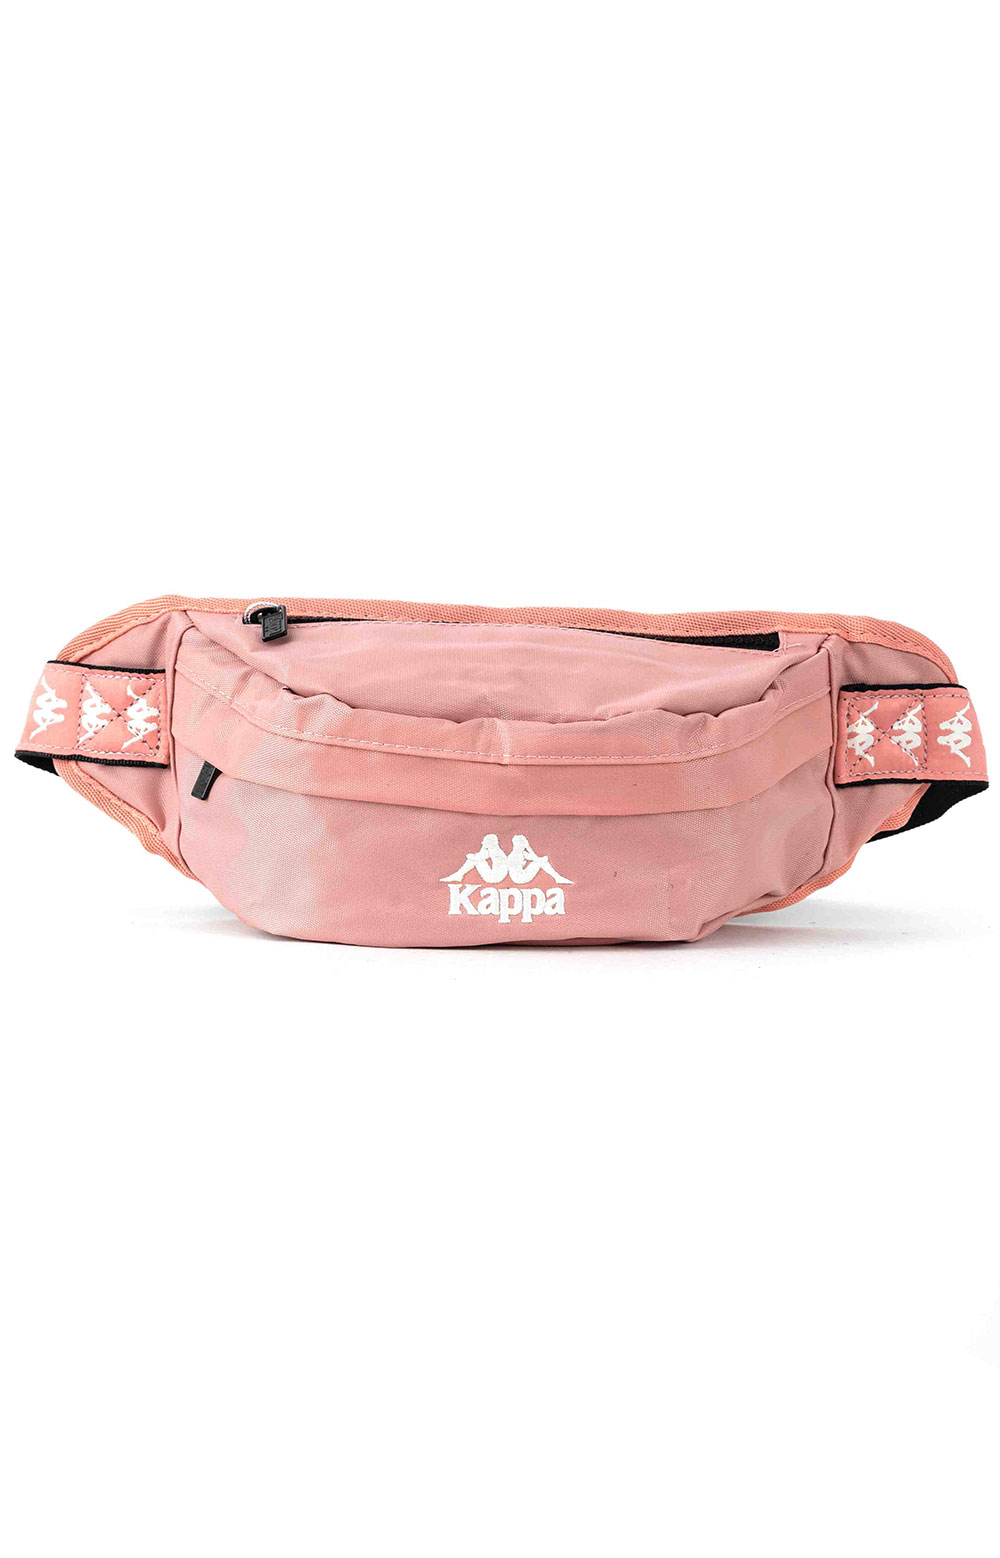 222 Banda Anais Pouch Bag - Dark Pink/White